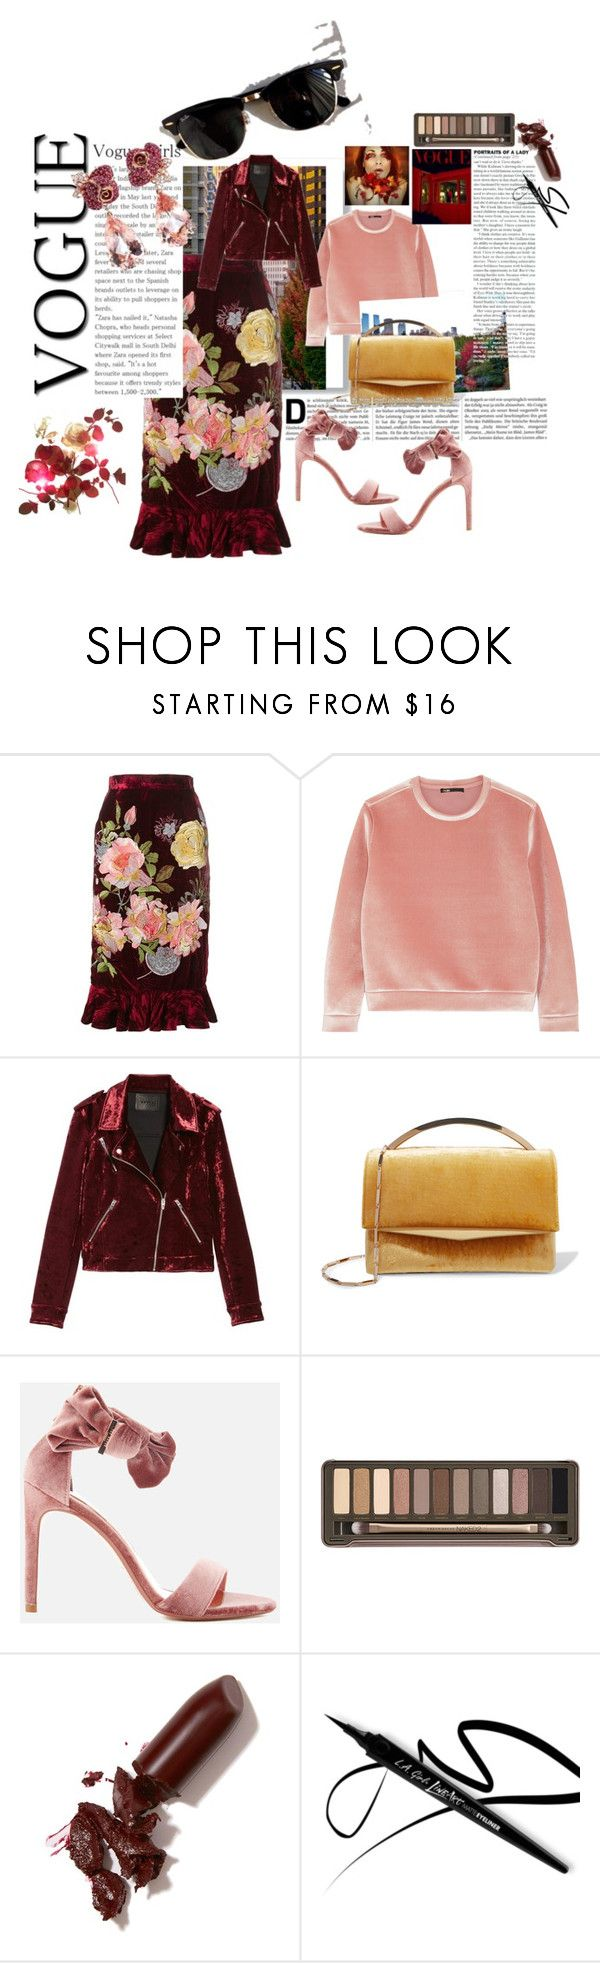 """""""Season of Love."""" by mzill-fashoin29rc ❤ liked on Polyvore featuring Post-It, Alice Archer, Maje, BLANKNYC, Eddie Borgo, Ray-Ban, Ted Baker, Urban Decay, LAQA & Co. and Anyallerie"""